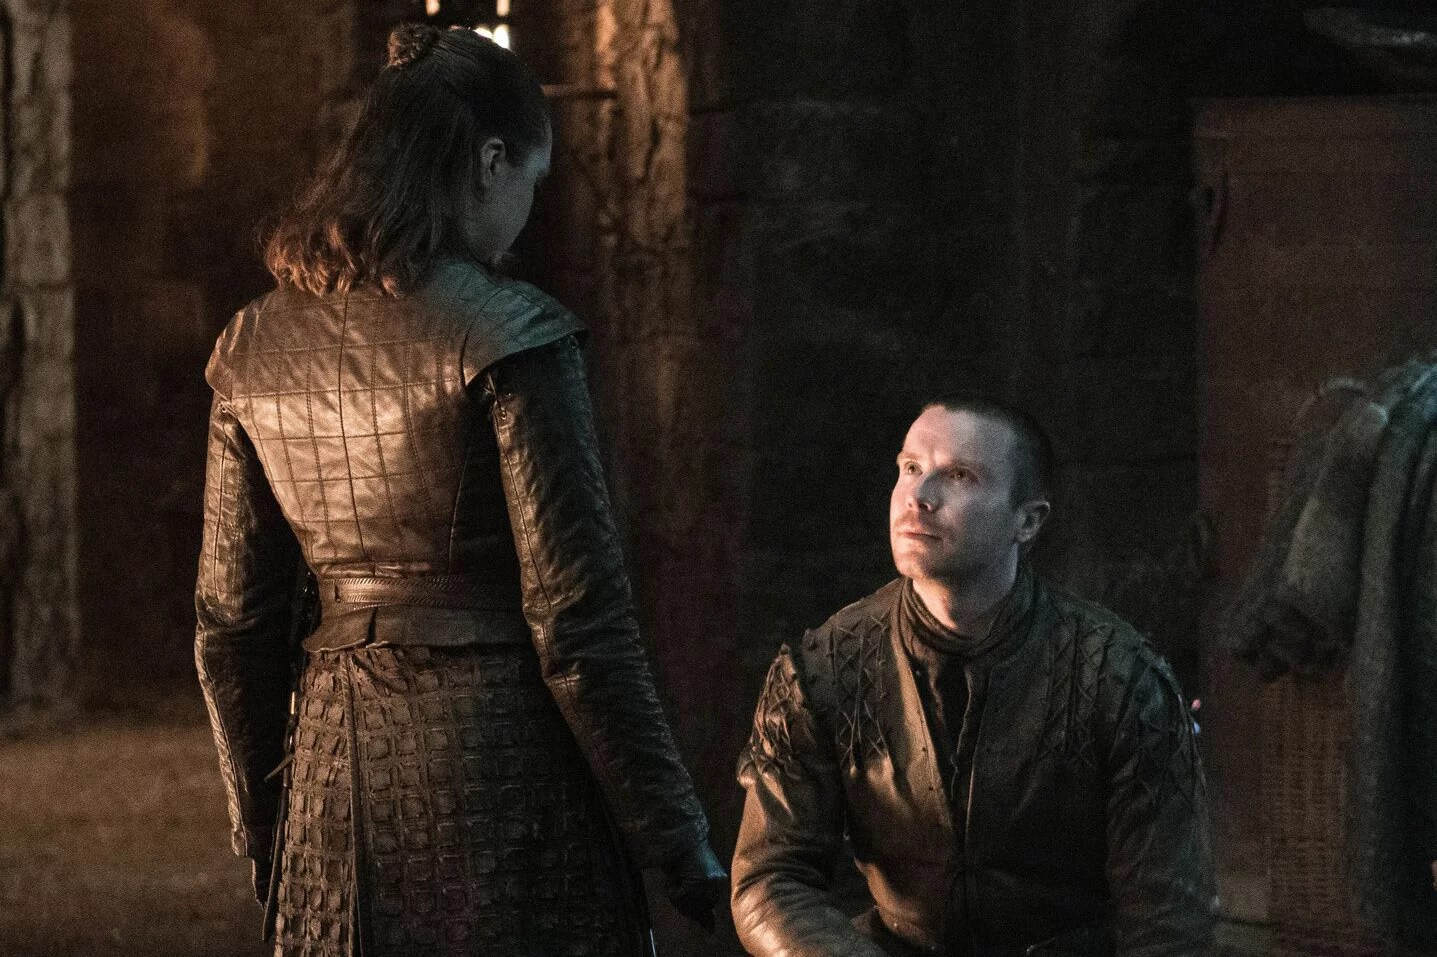 Gendry sitting in front of Arya